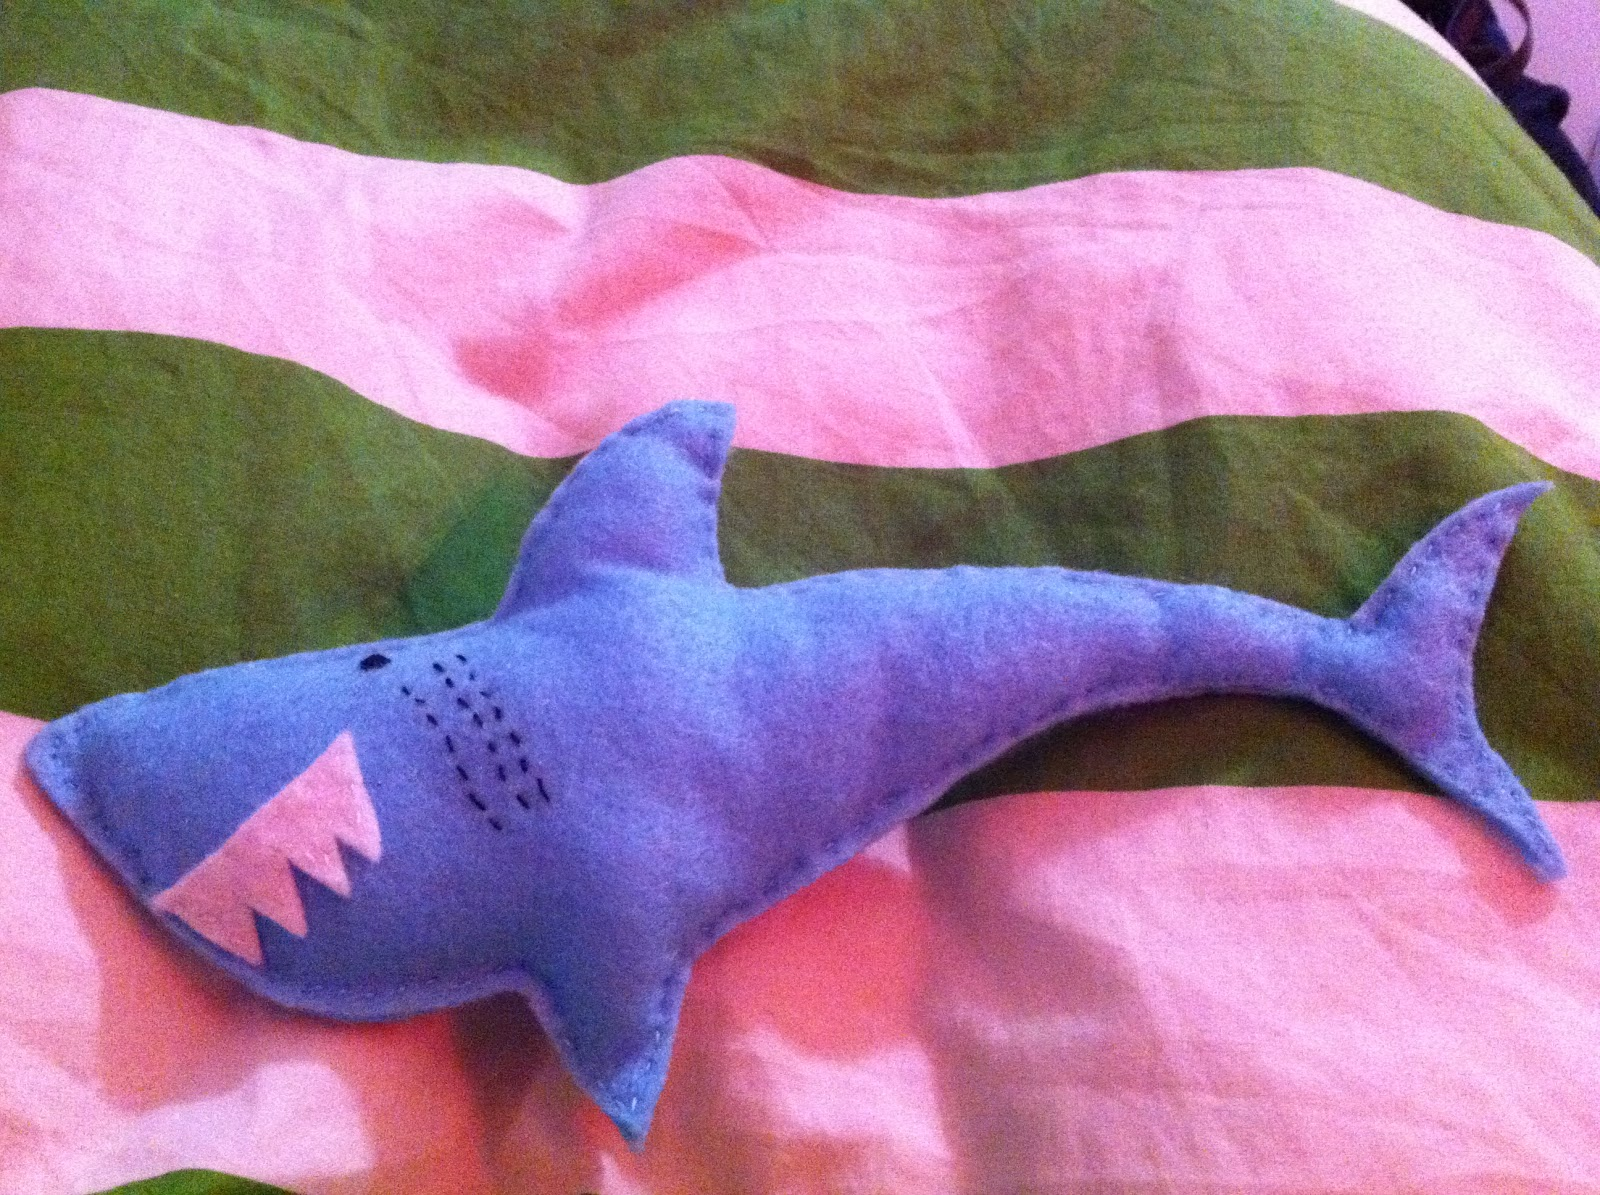 december 2010 a rosie outlook uk fashion and lifestyle blog this is bitey by the way the shark that tom made he sketched out a template and whipped him up in about 45 minutes so i guess we know who has the